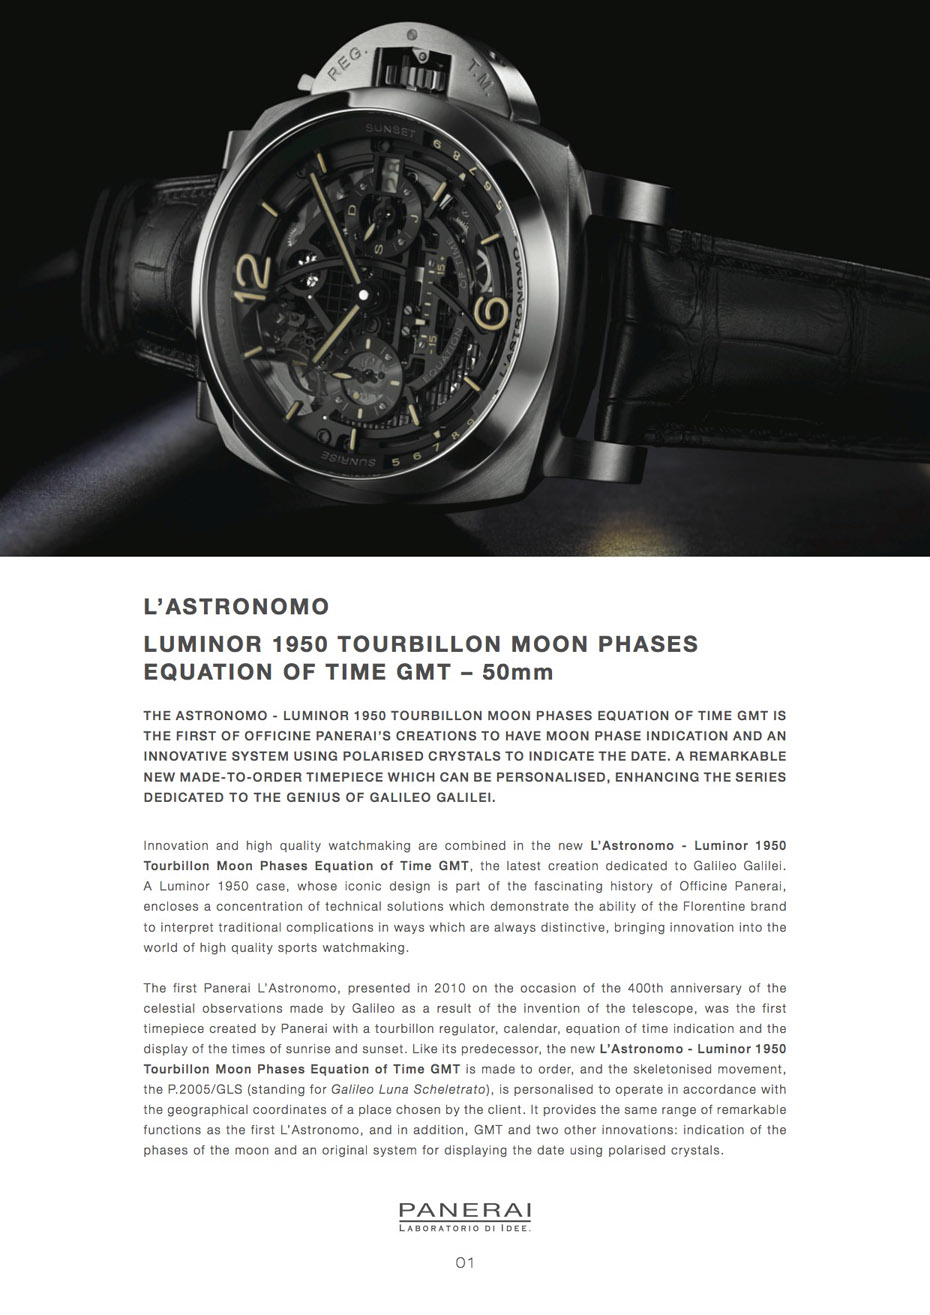 Officine Panerai Astronomo Luminor 1950, Panerai Astronomo